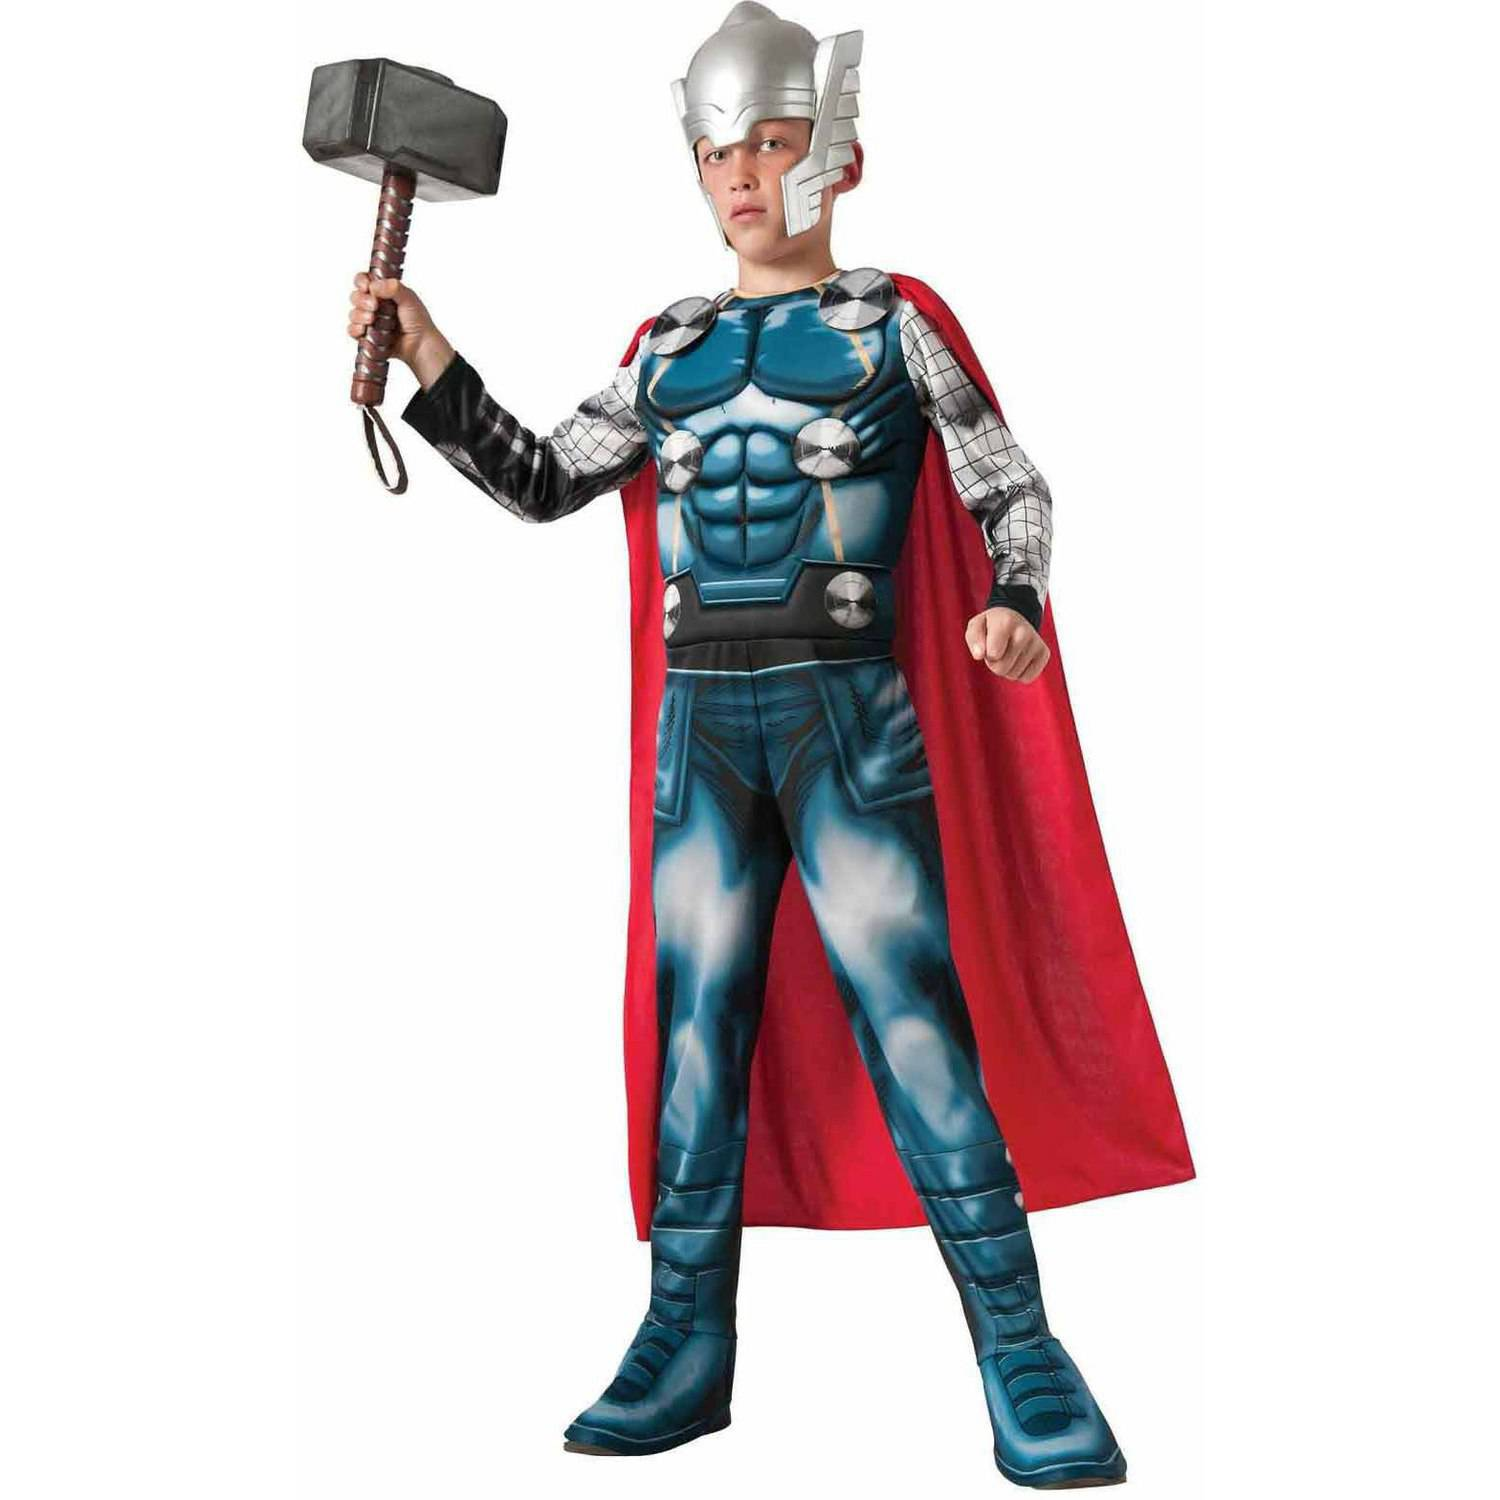 Avengers Assemble Deluxe Thor Boys' Child Halloween Costume by Generic